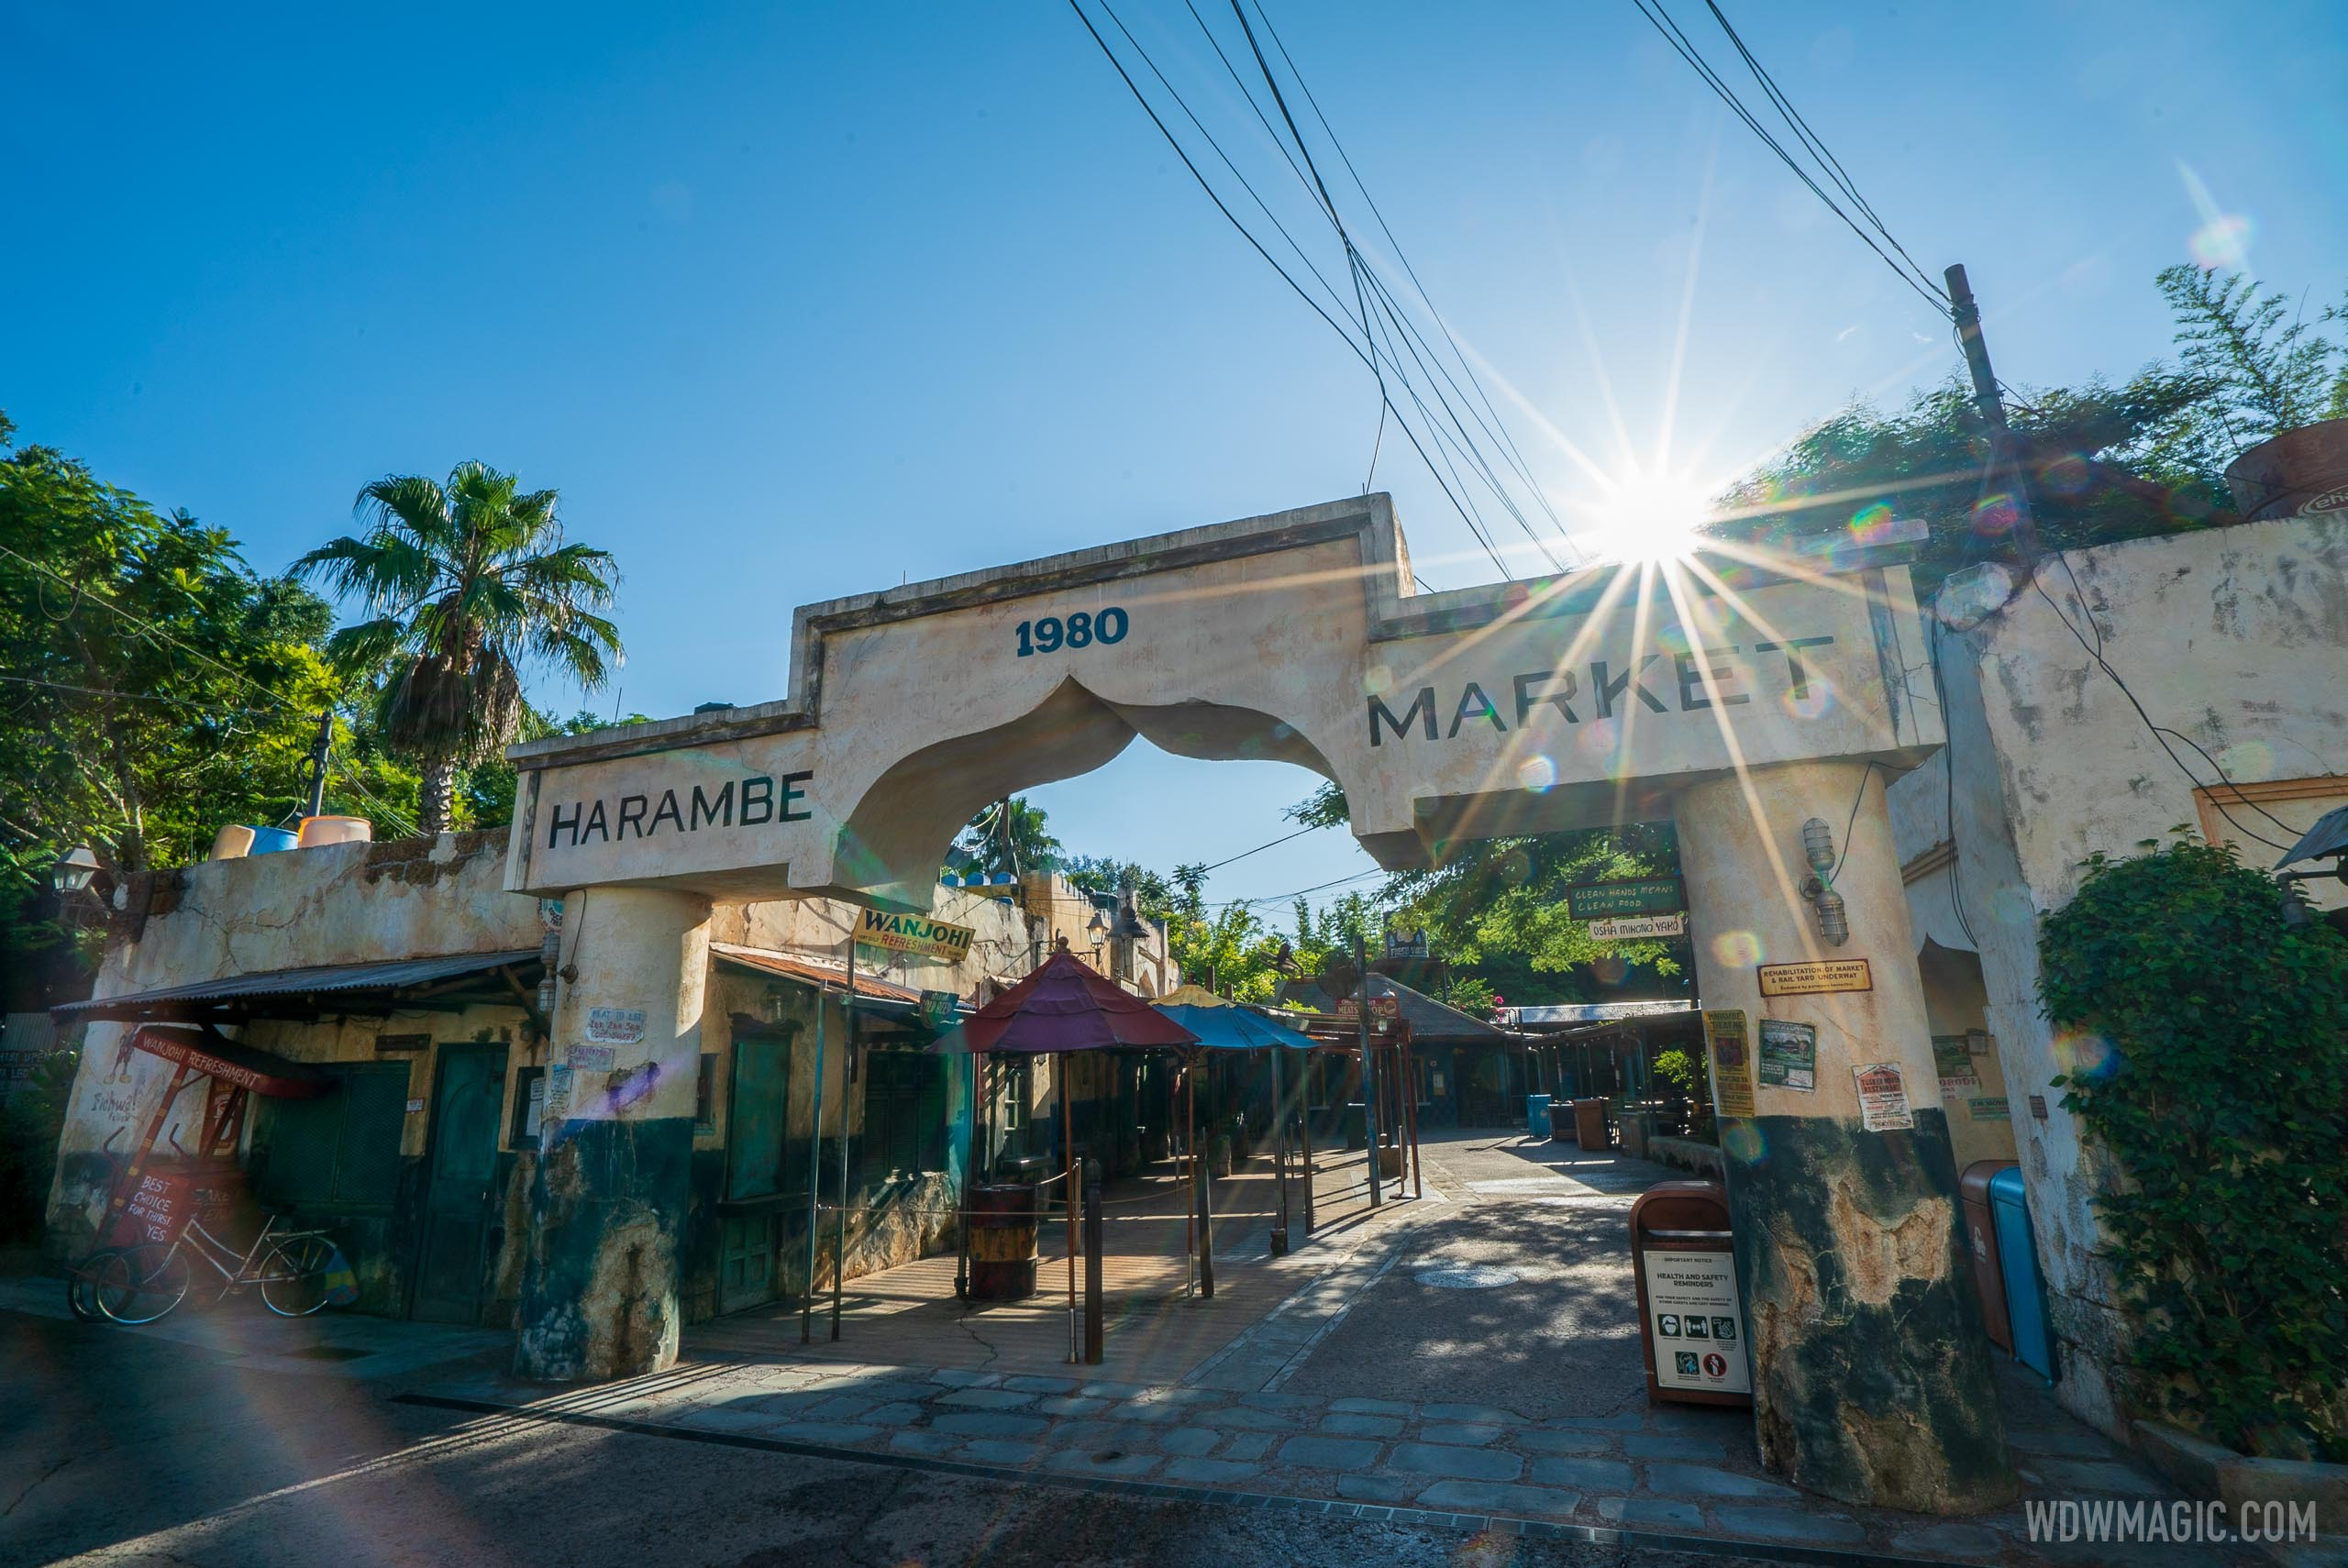 Disney's Animal Kingdom is full of incredibly authentic design